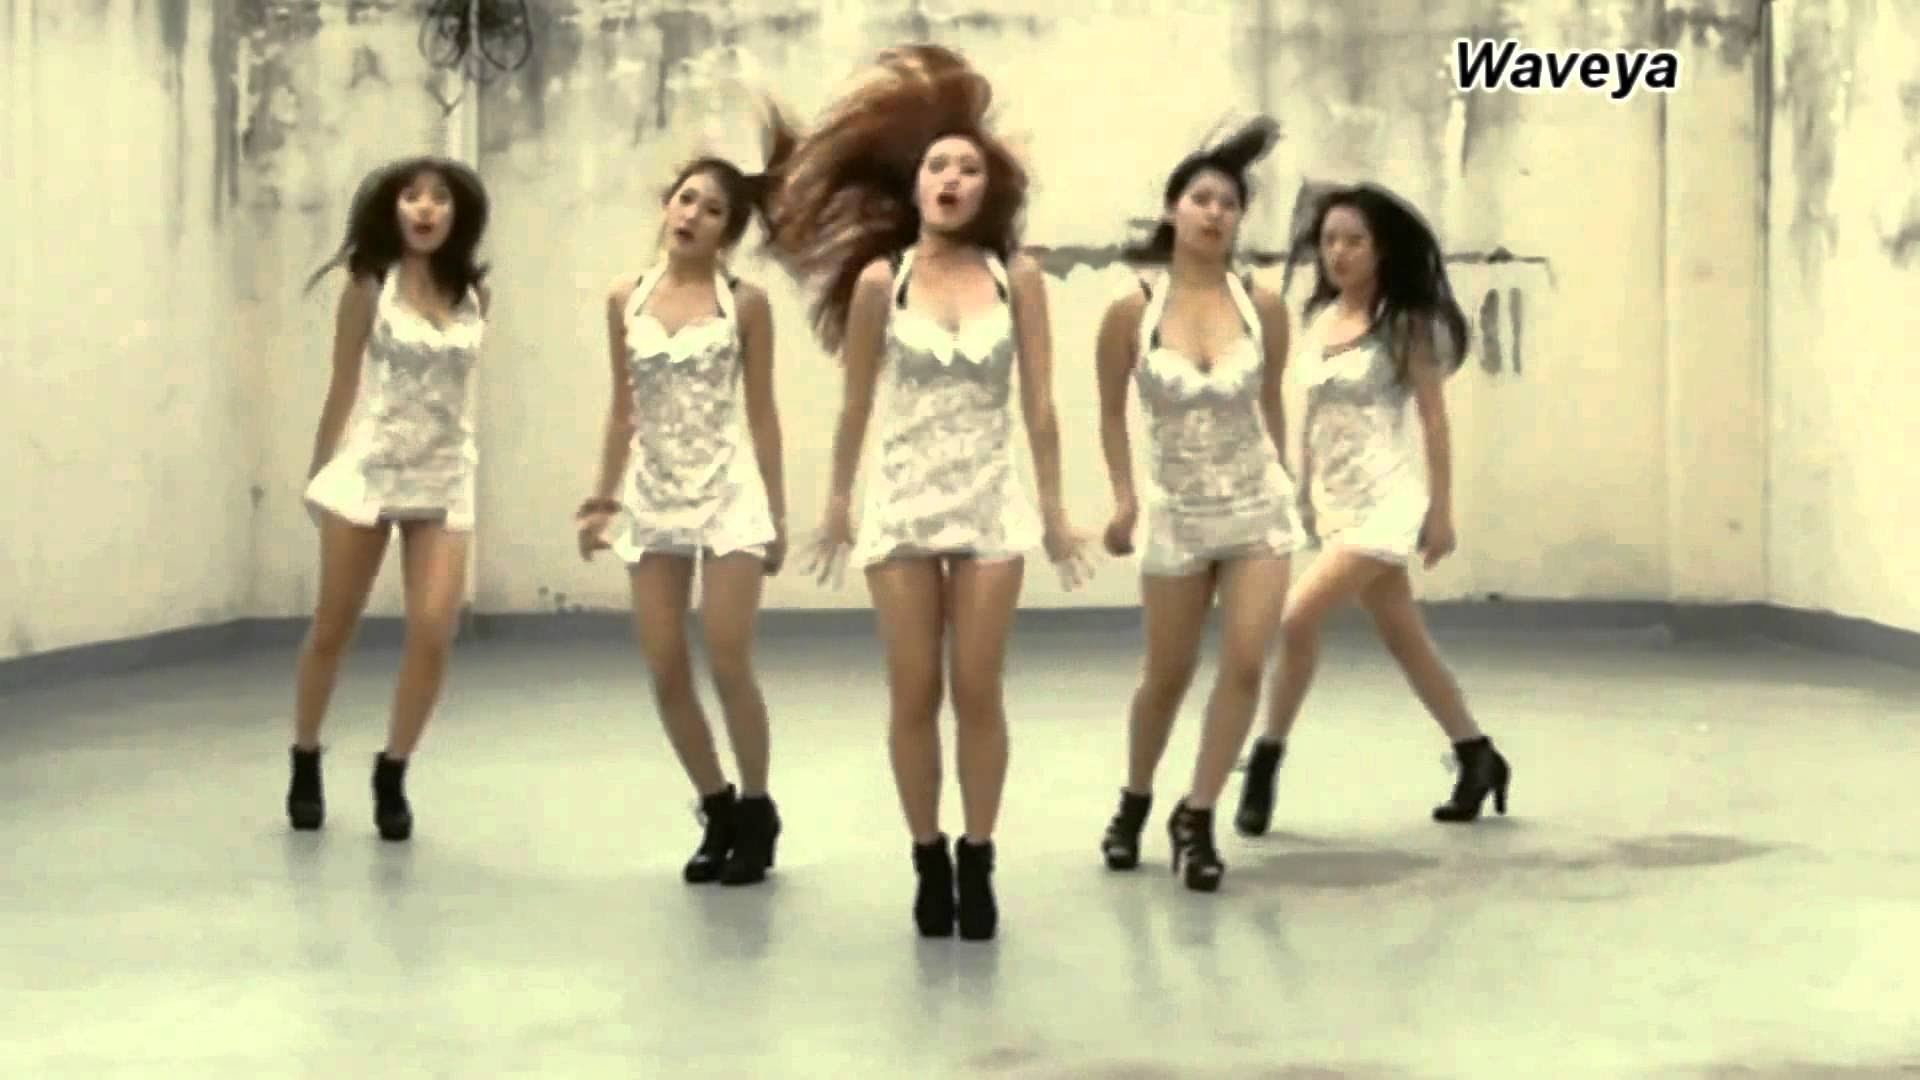 Korean Girl Group Backgrounds, Compatible - PC, Mobile, Gadgets| 1920x1080 px